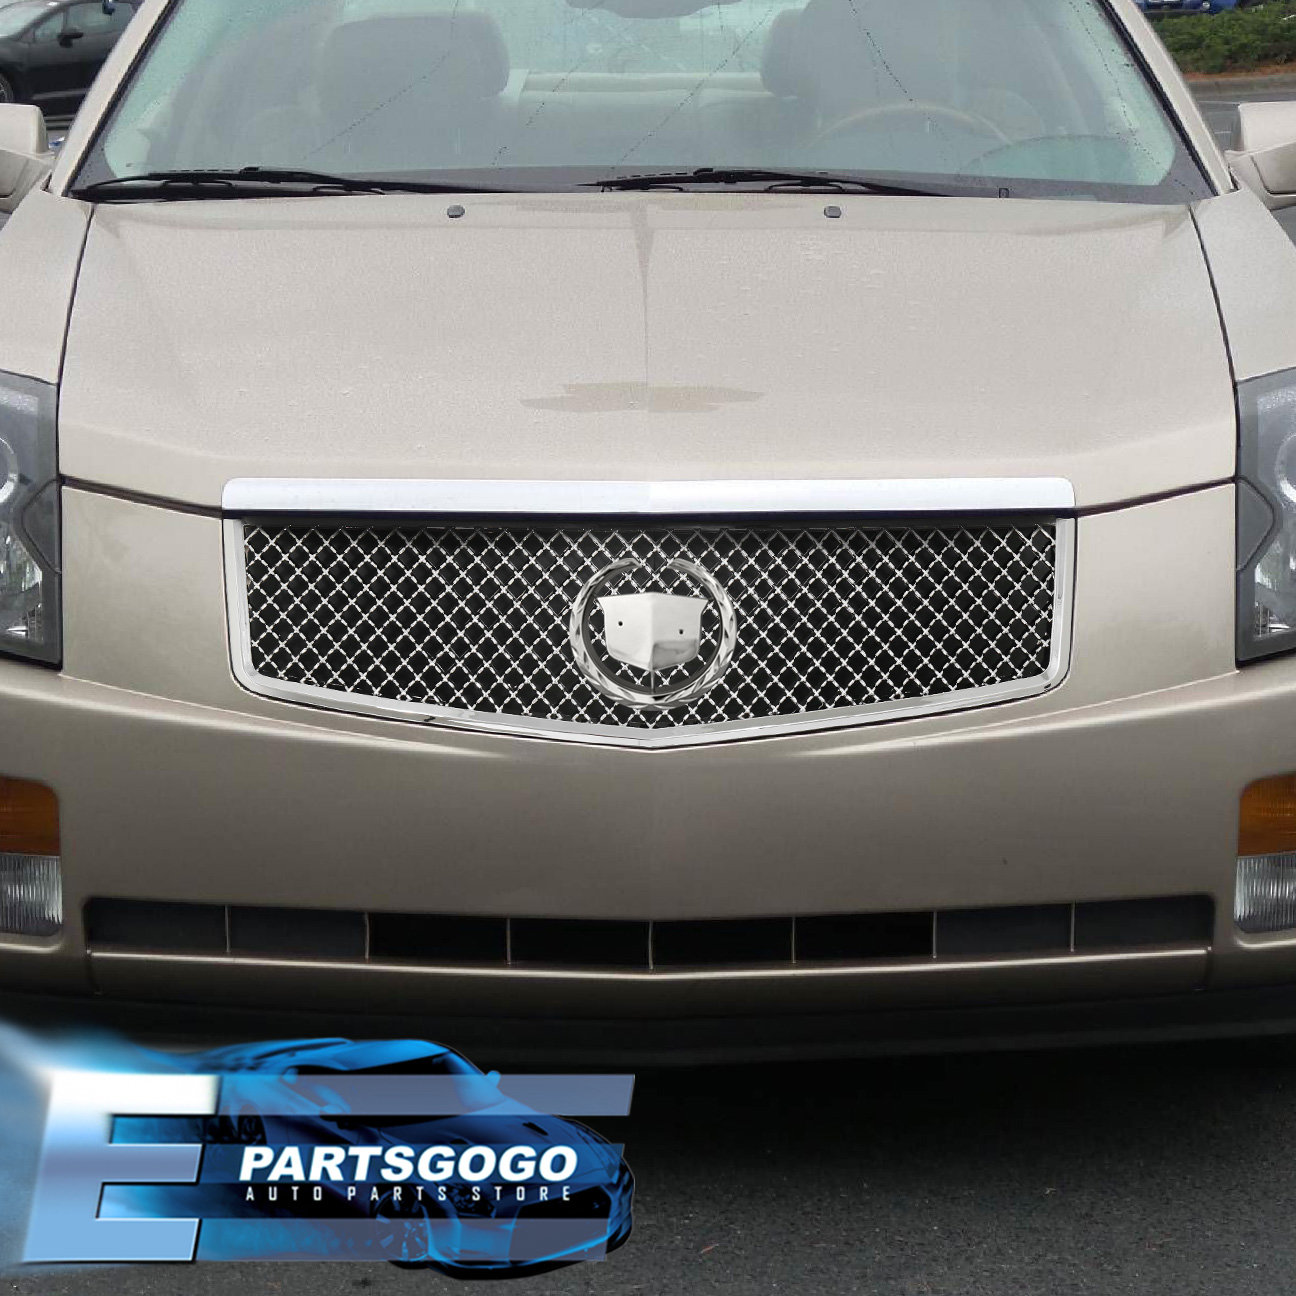 For 2003-2007 Cadillac CTS Front Bumper ABS Upper Grille